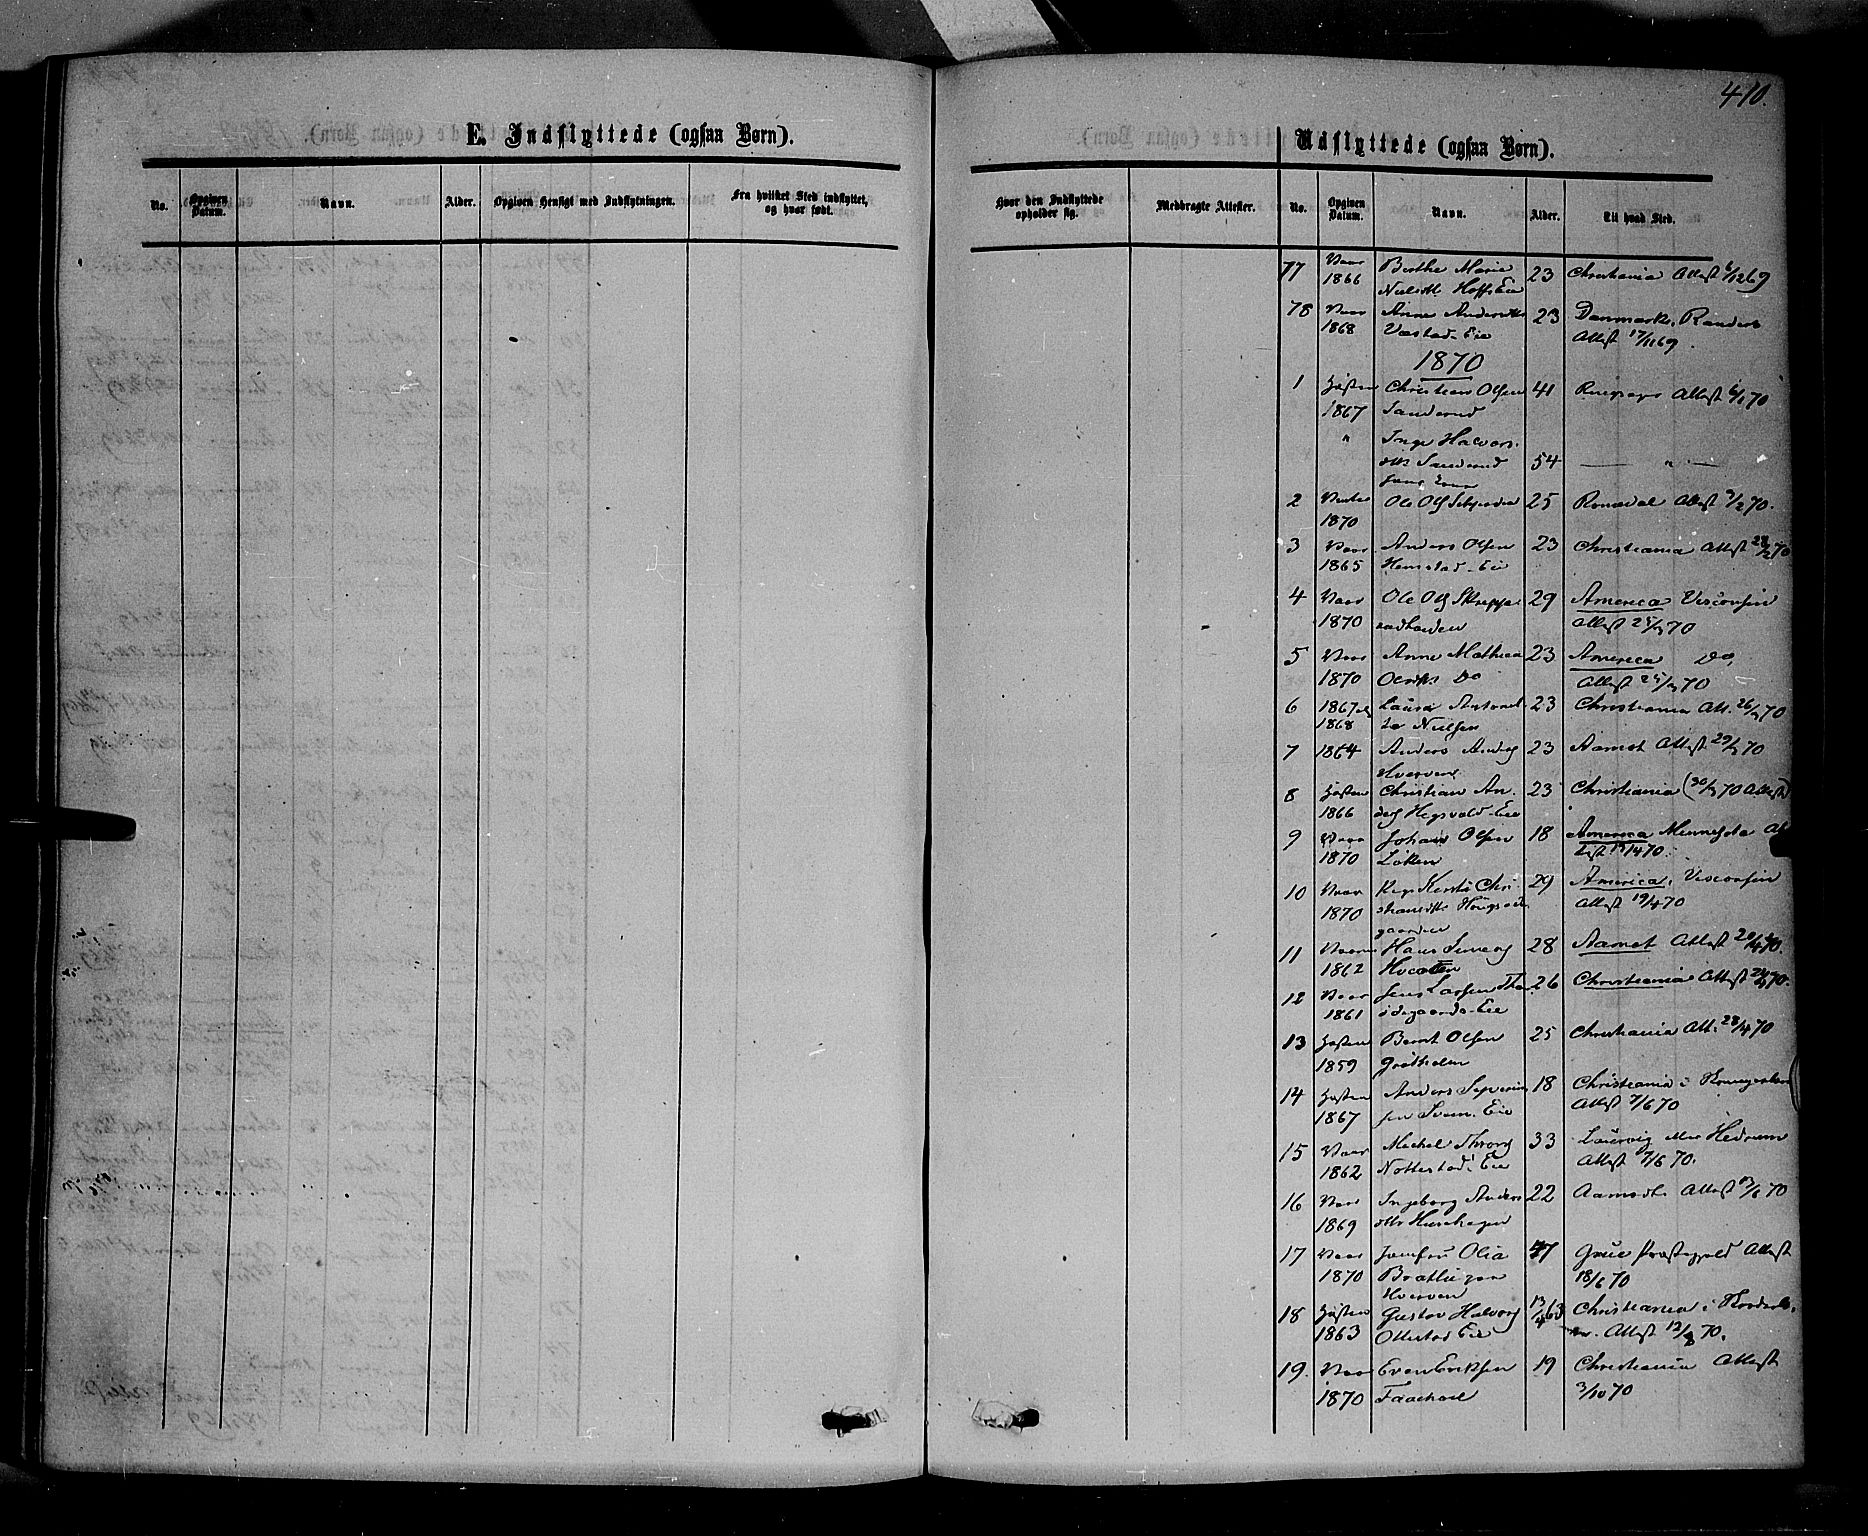 SAH, Stange prestekontor, K/L0013: Parish register (official) no. 13, 1862-1879, p. 410